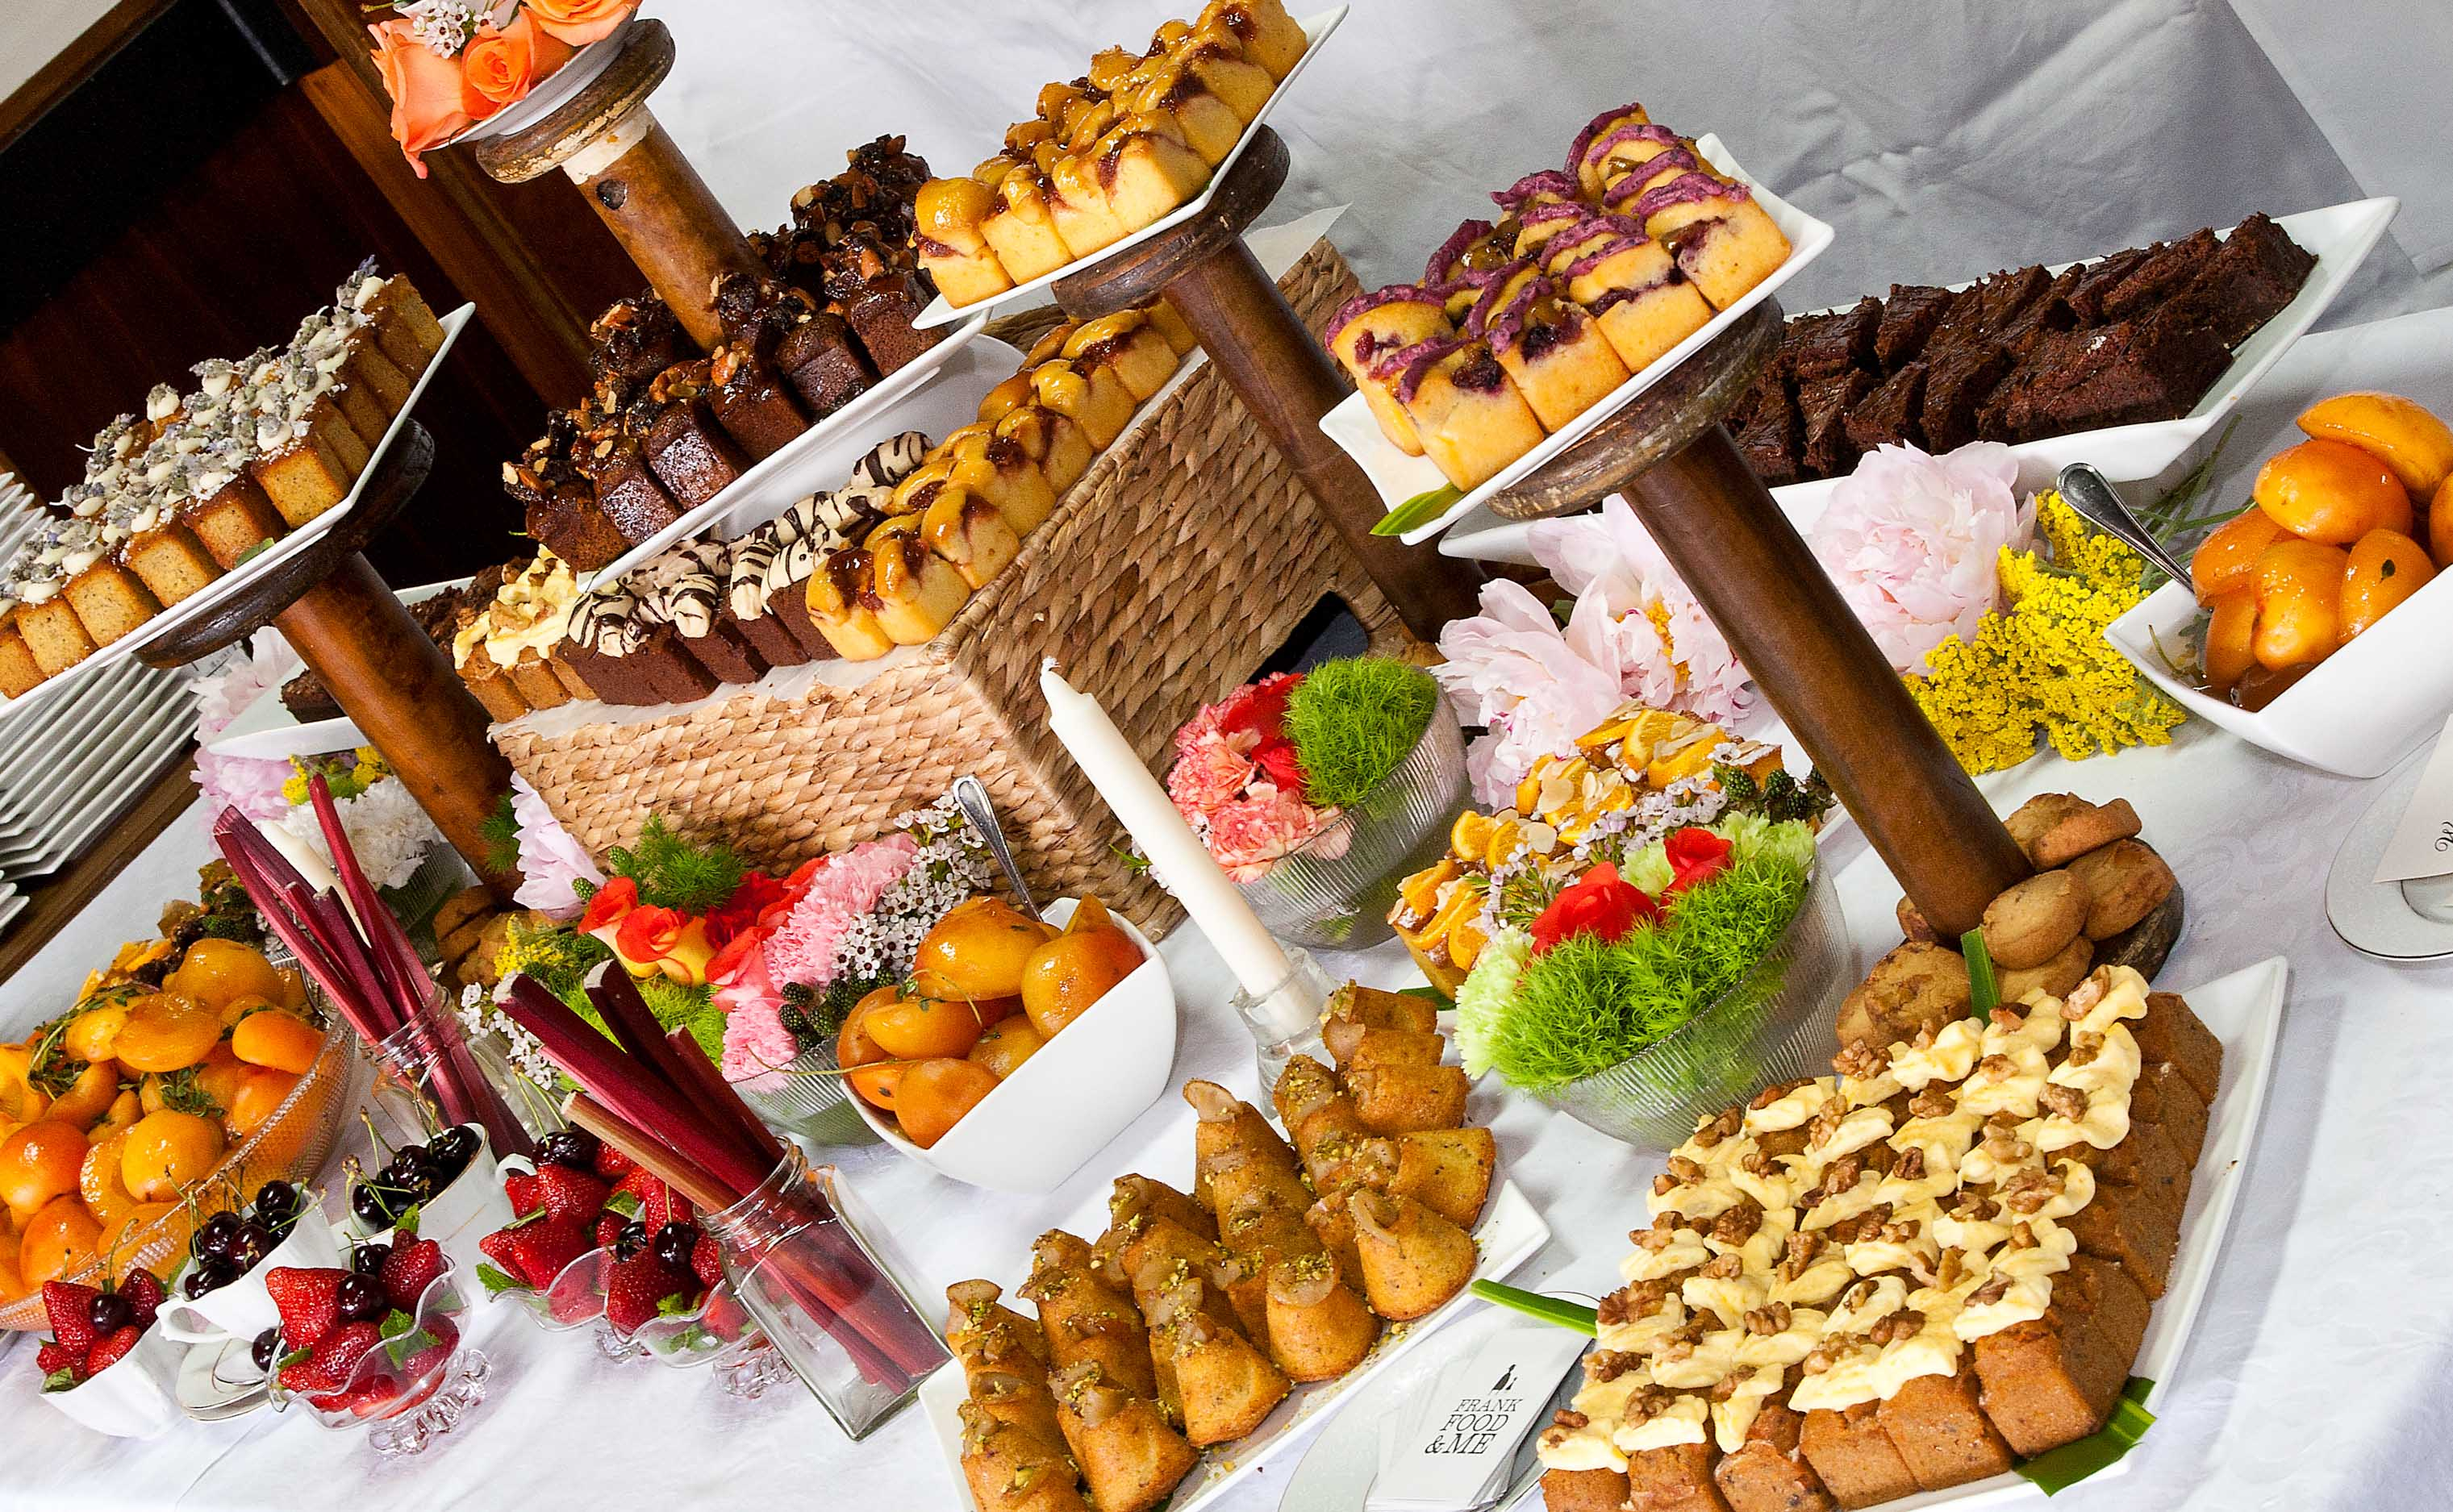 Wedding Food Trends 2014 Hizons Catering Catering Services For Weddings Debut Kids Parties